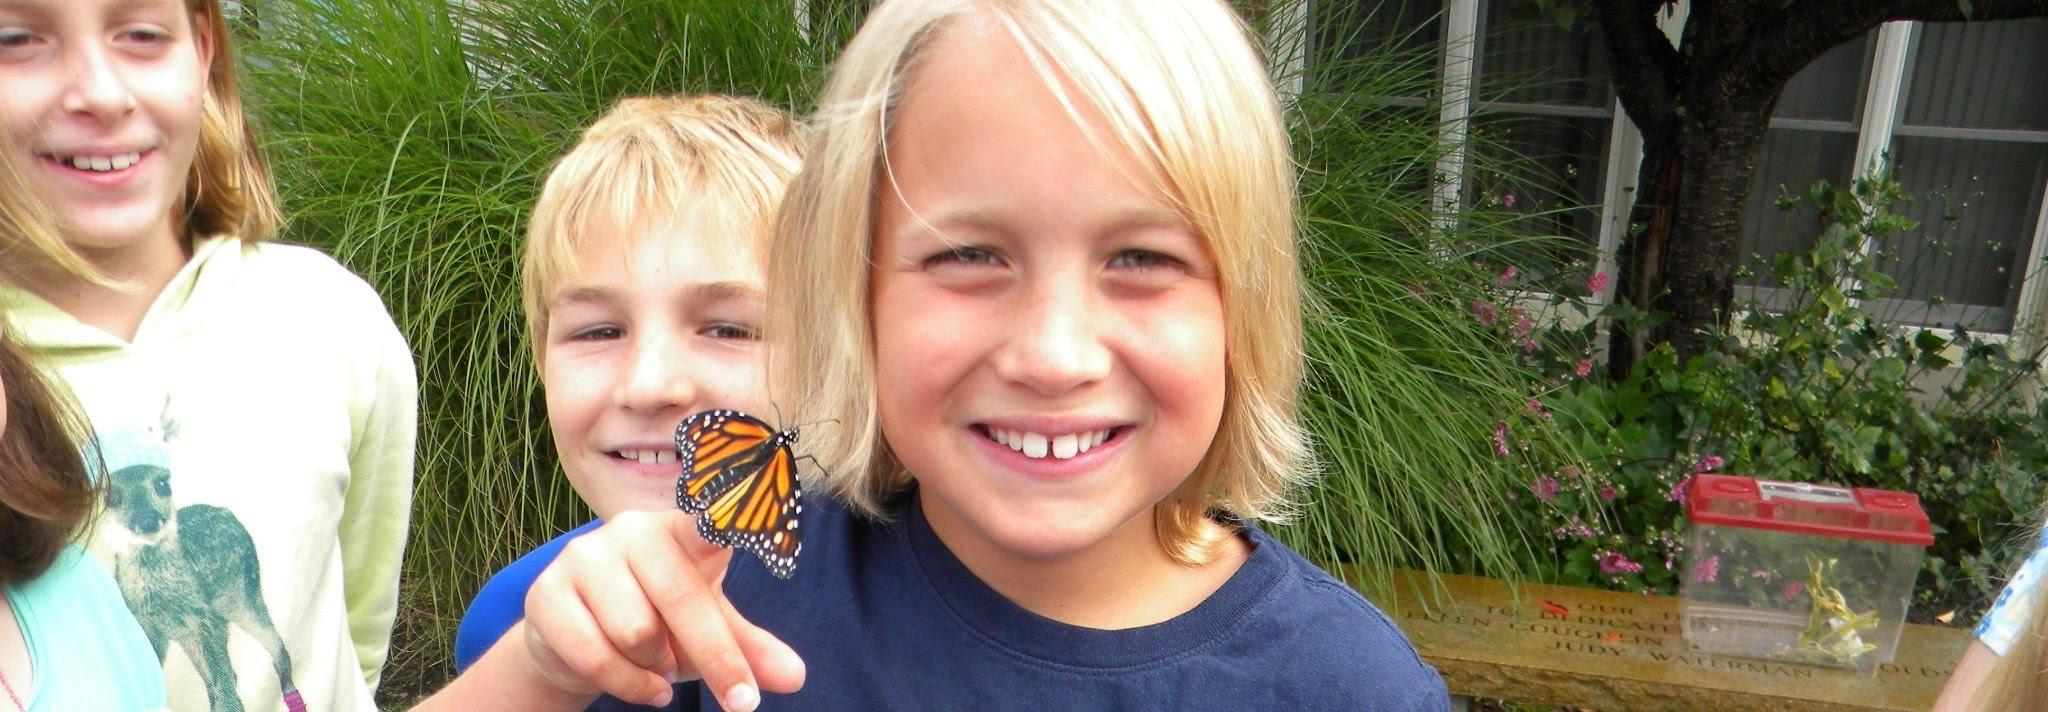 Young boy holding butterfly